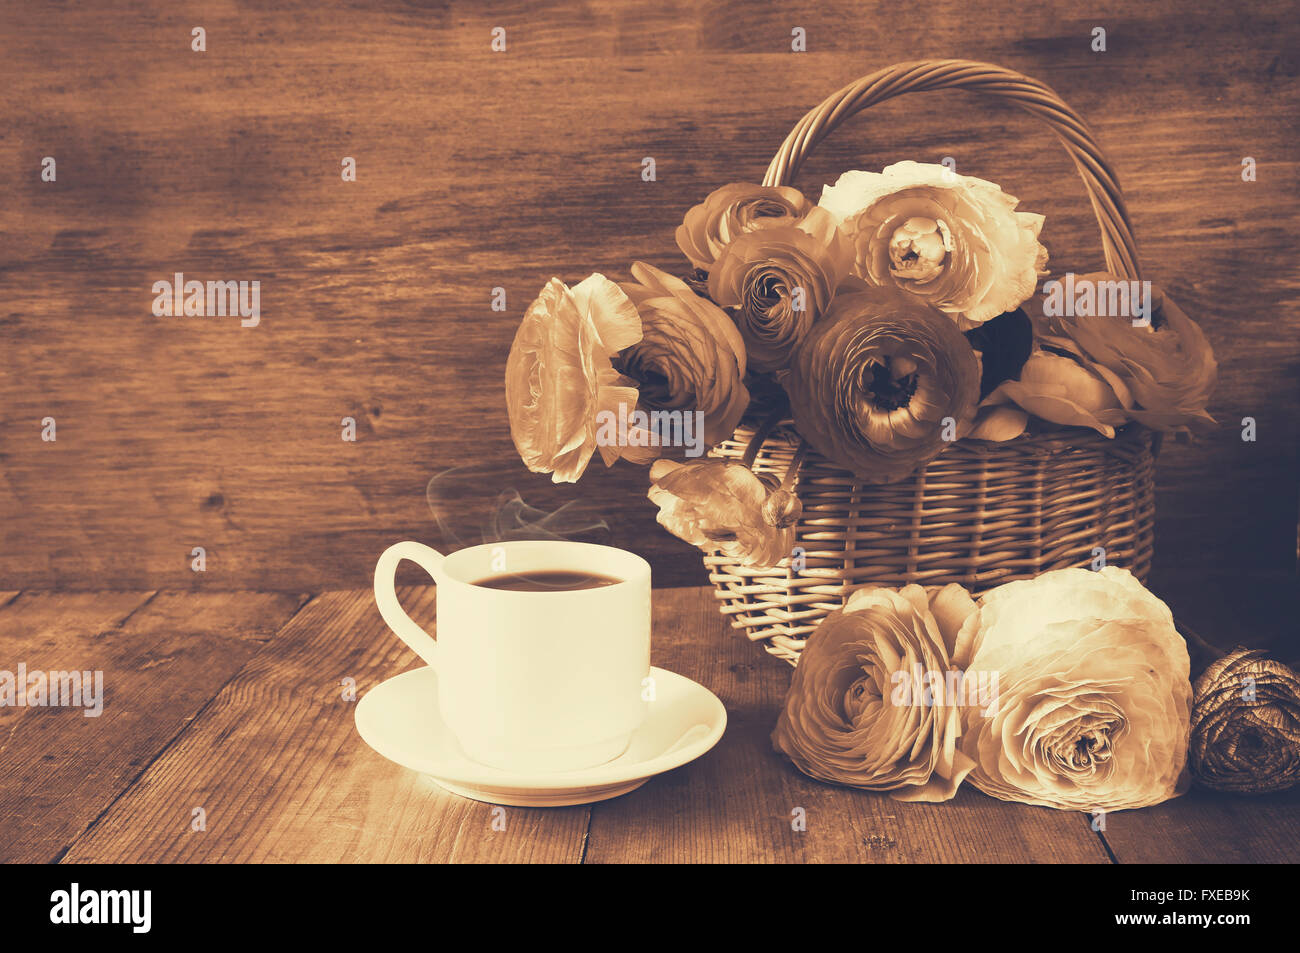 image of beautiful flowers next to cup of coffee. sepia style vintage filtered. - Stock Image